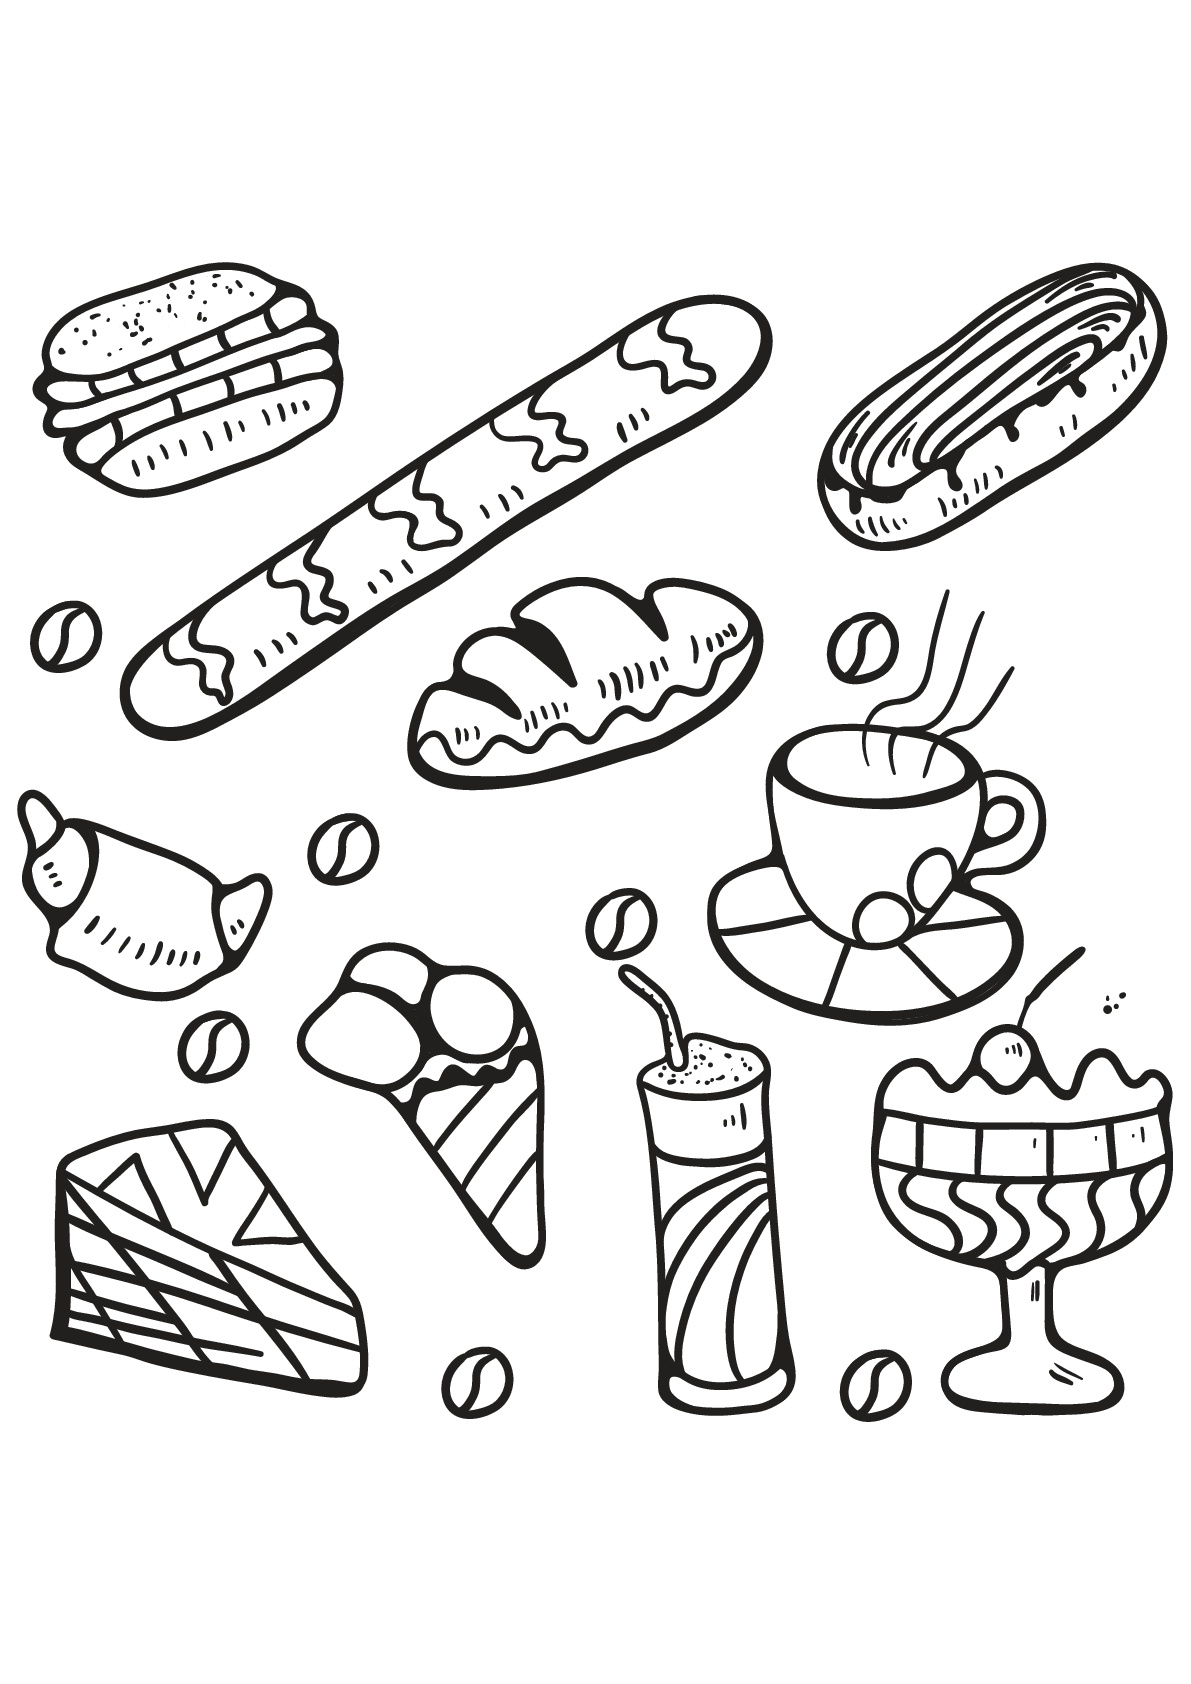 different desserts cakes and cupcakes - Coloring Stencils